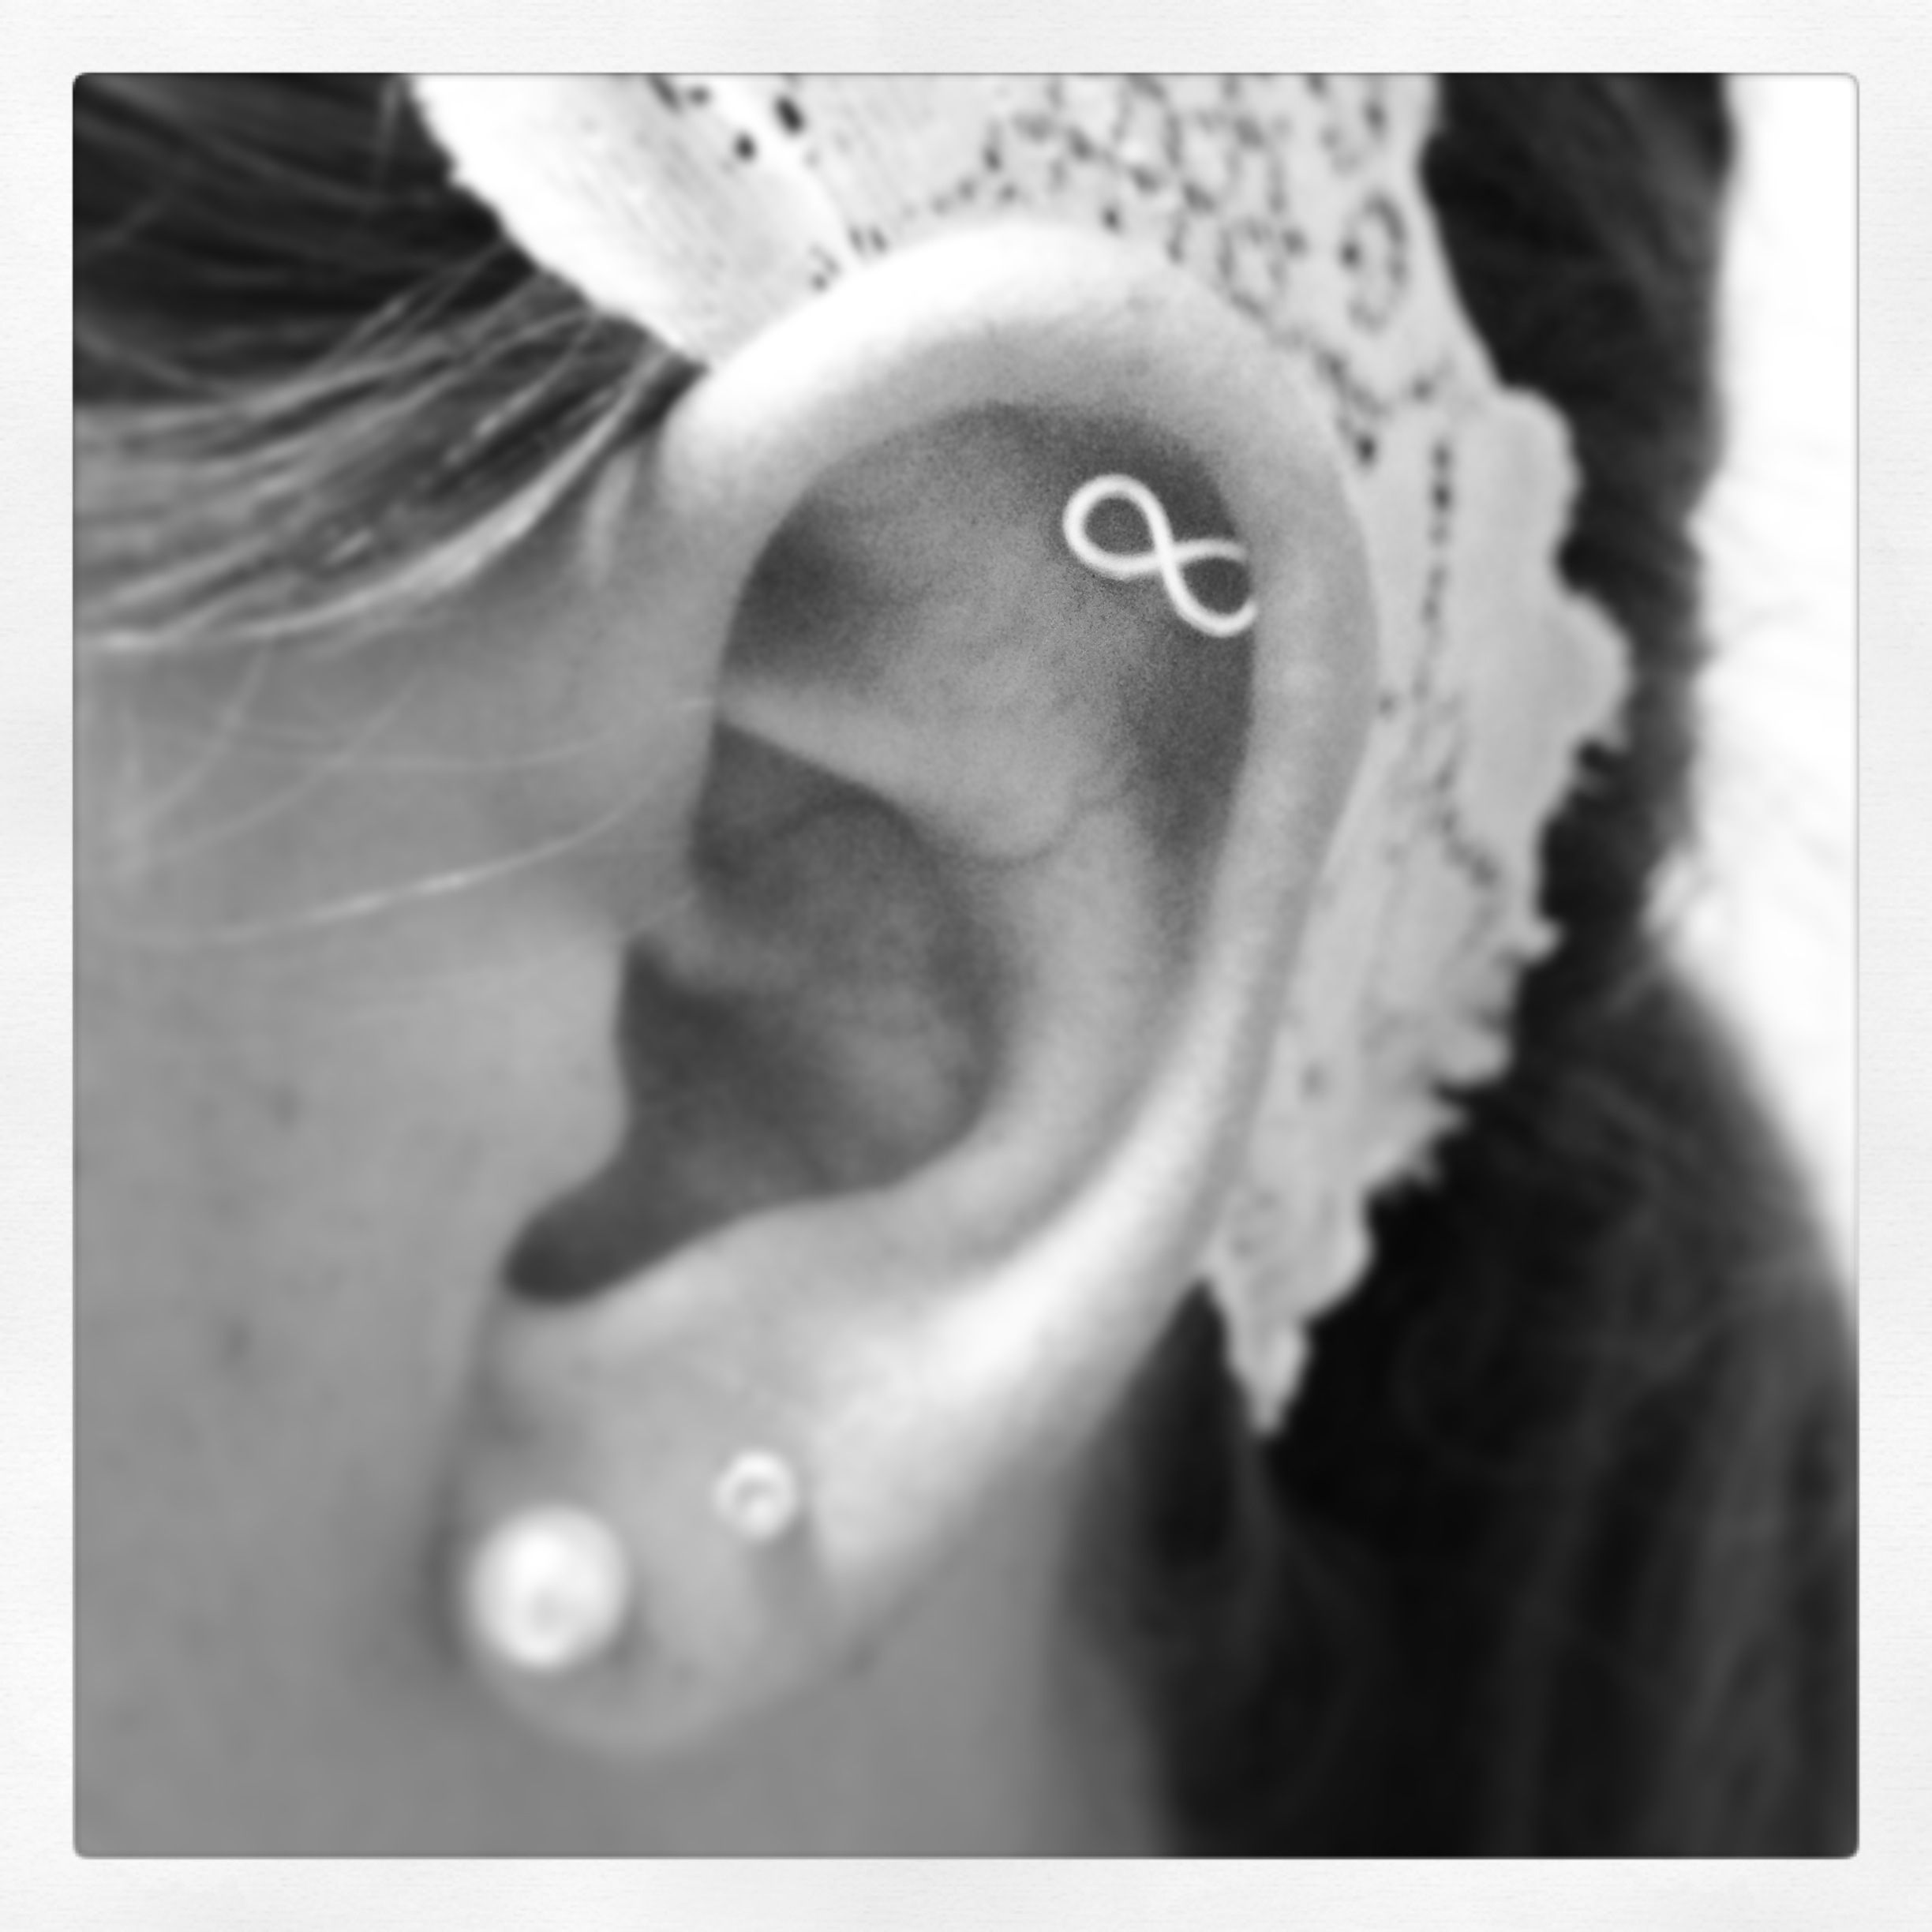 Nose piercing close up  infinity piercing earring for sure need an infinity cartilage